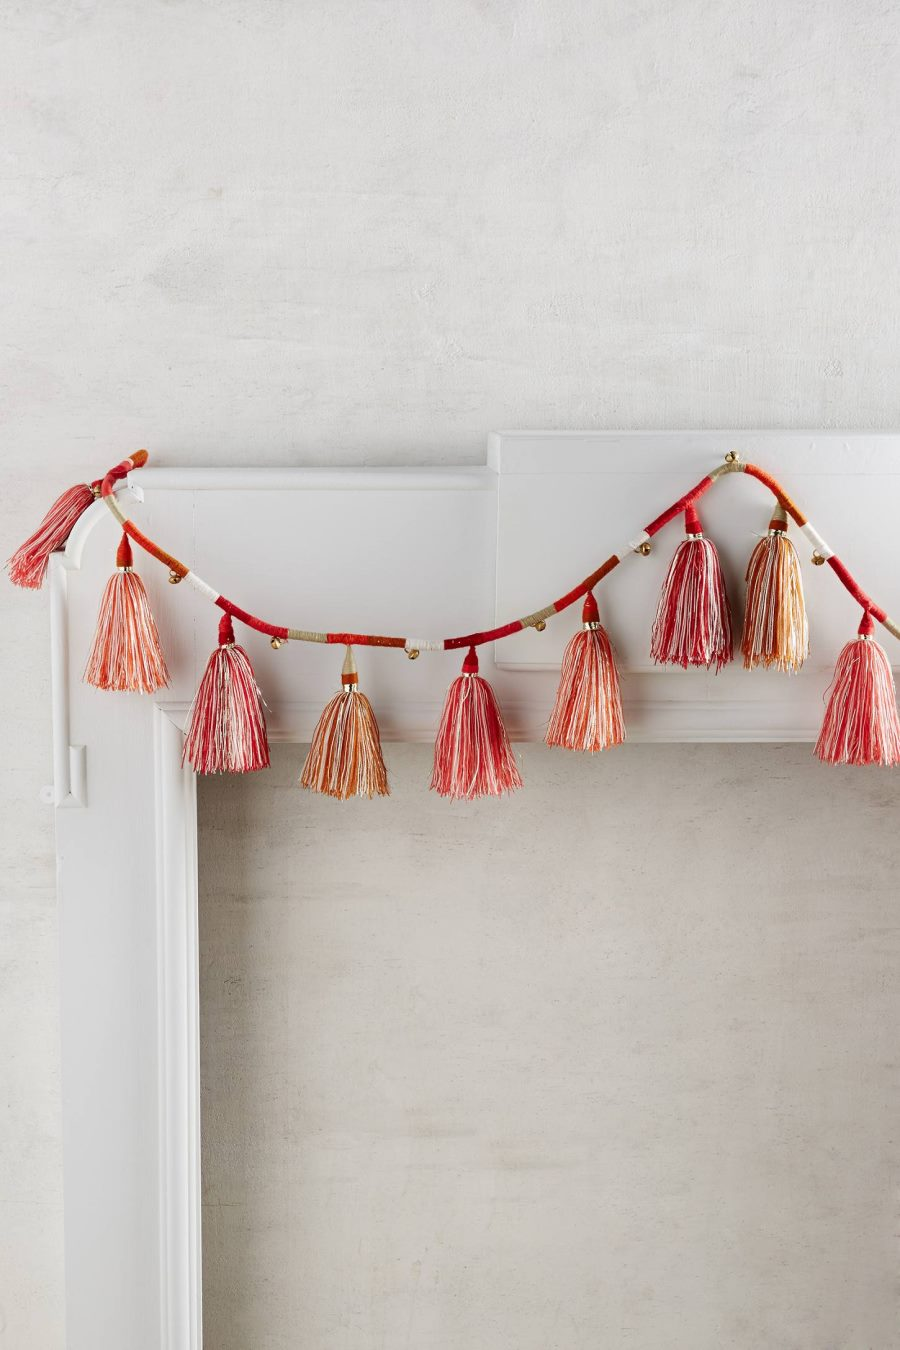 Tassel garland from Anthropologie